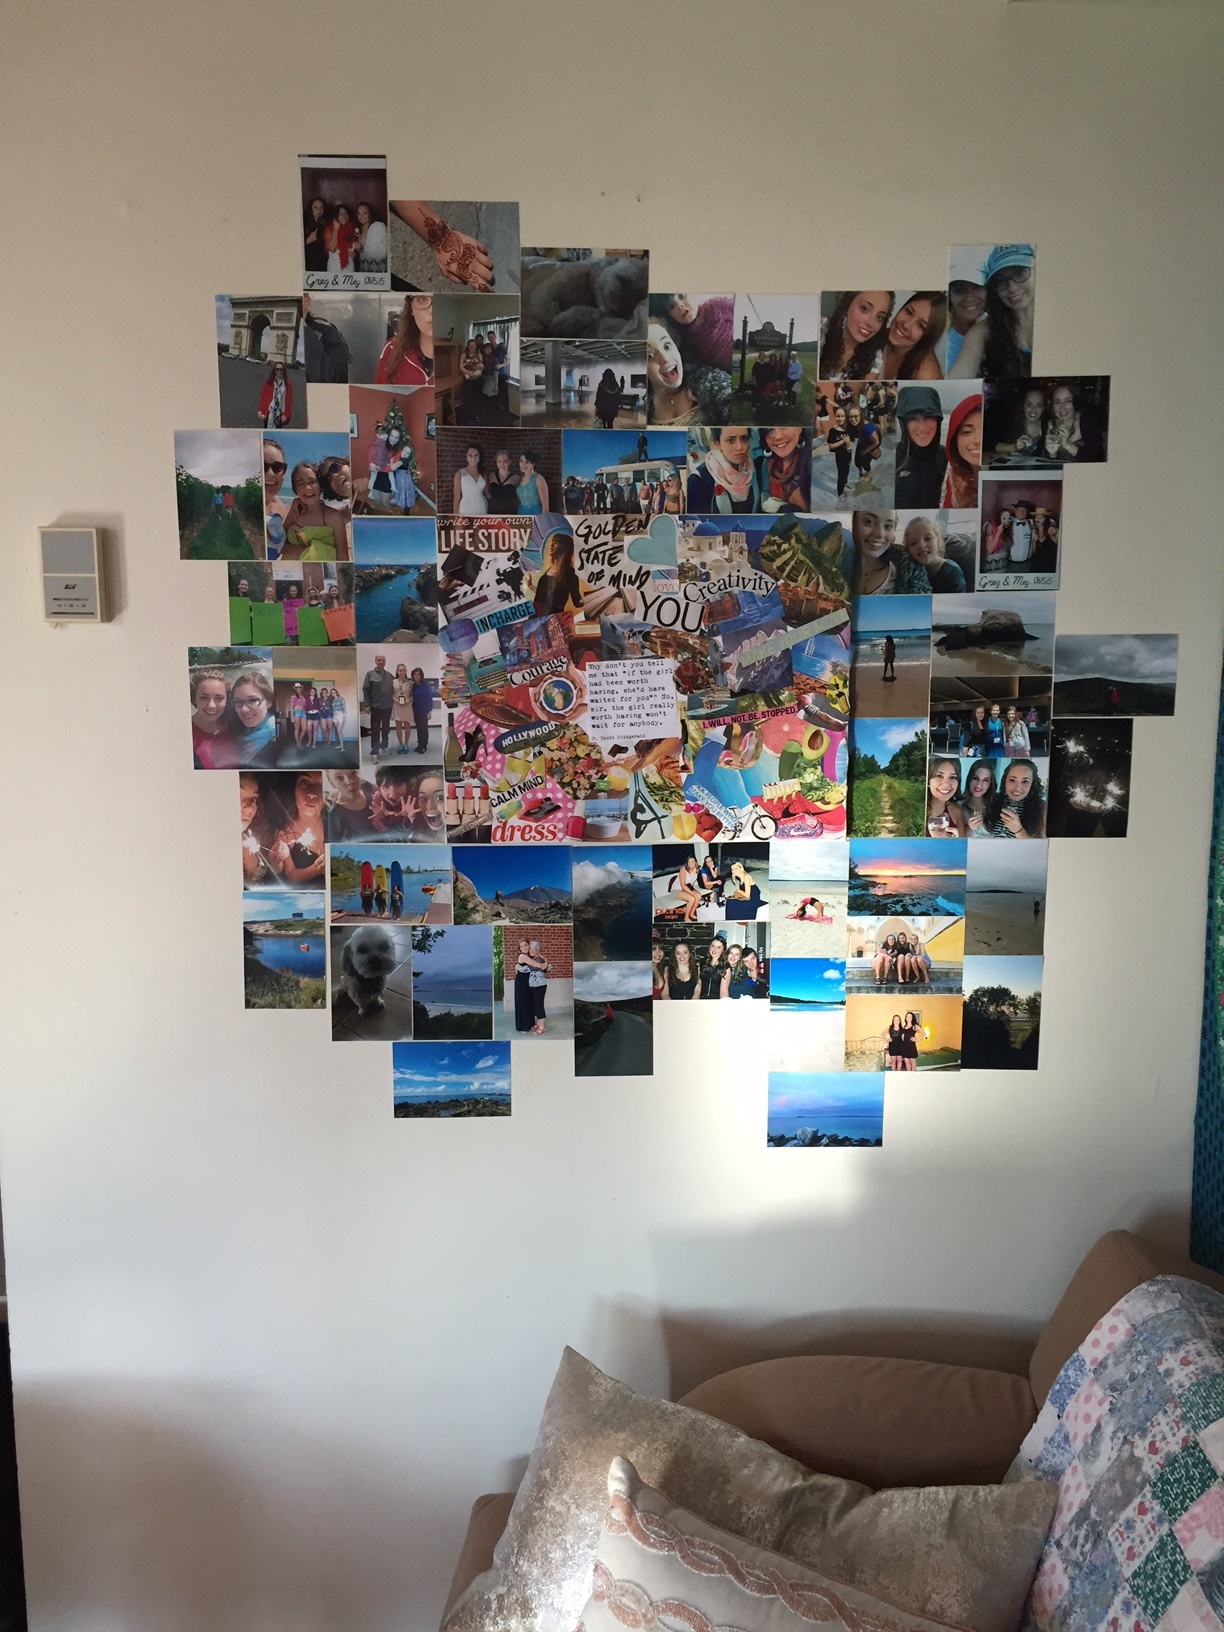 Follow your dreams and stay true to your passions with this awesome DIY craft for teens! Make your own vision board!